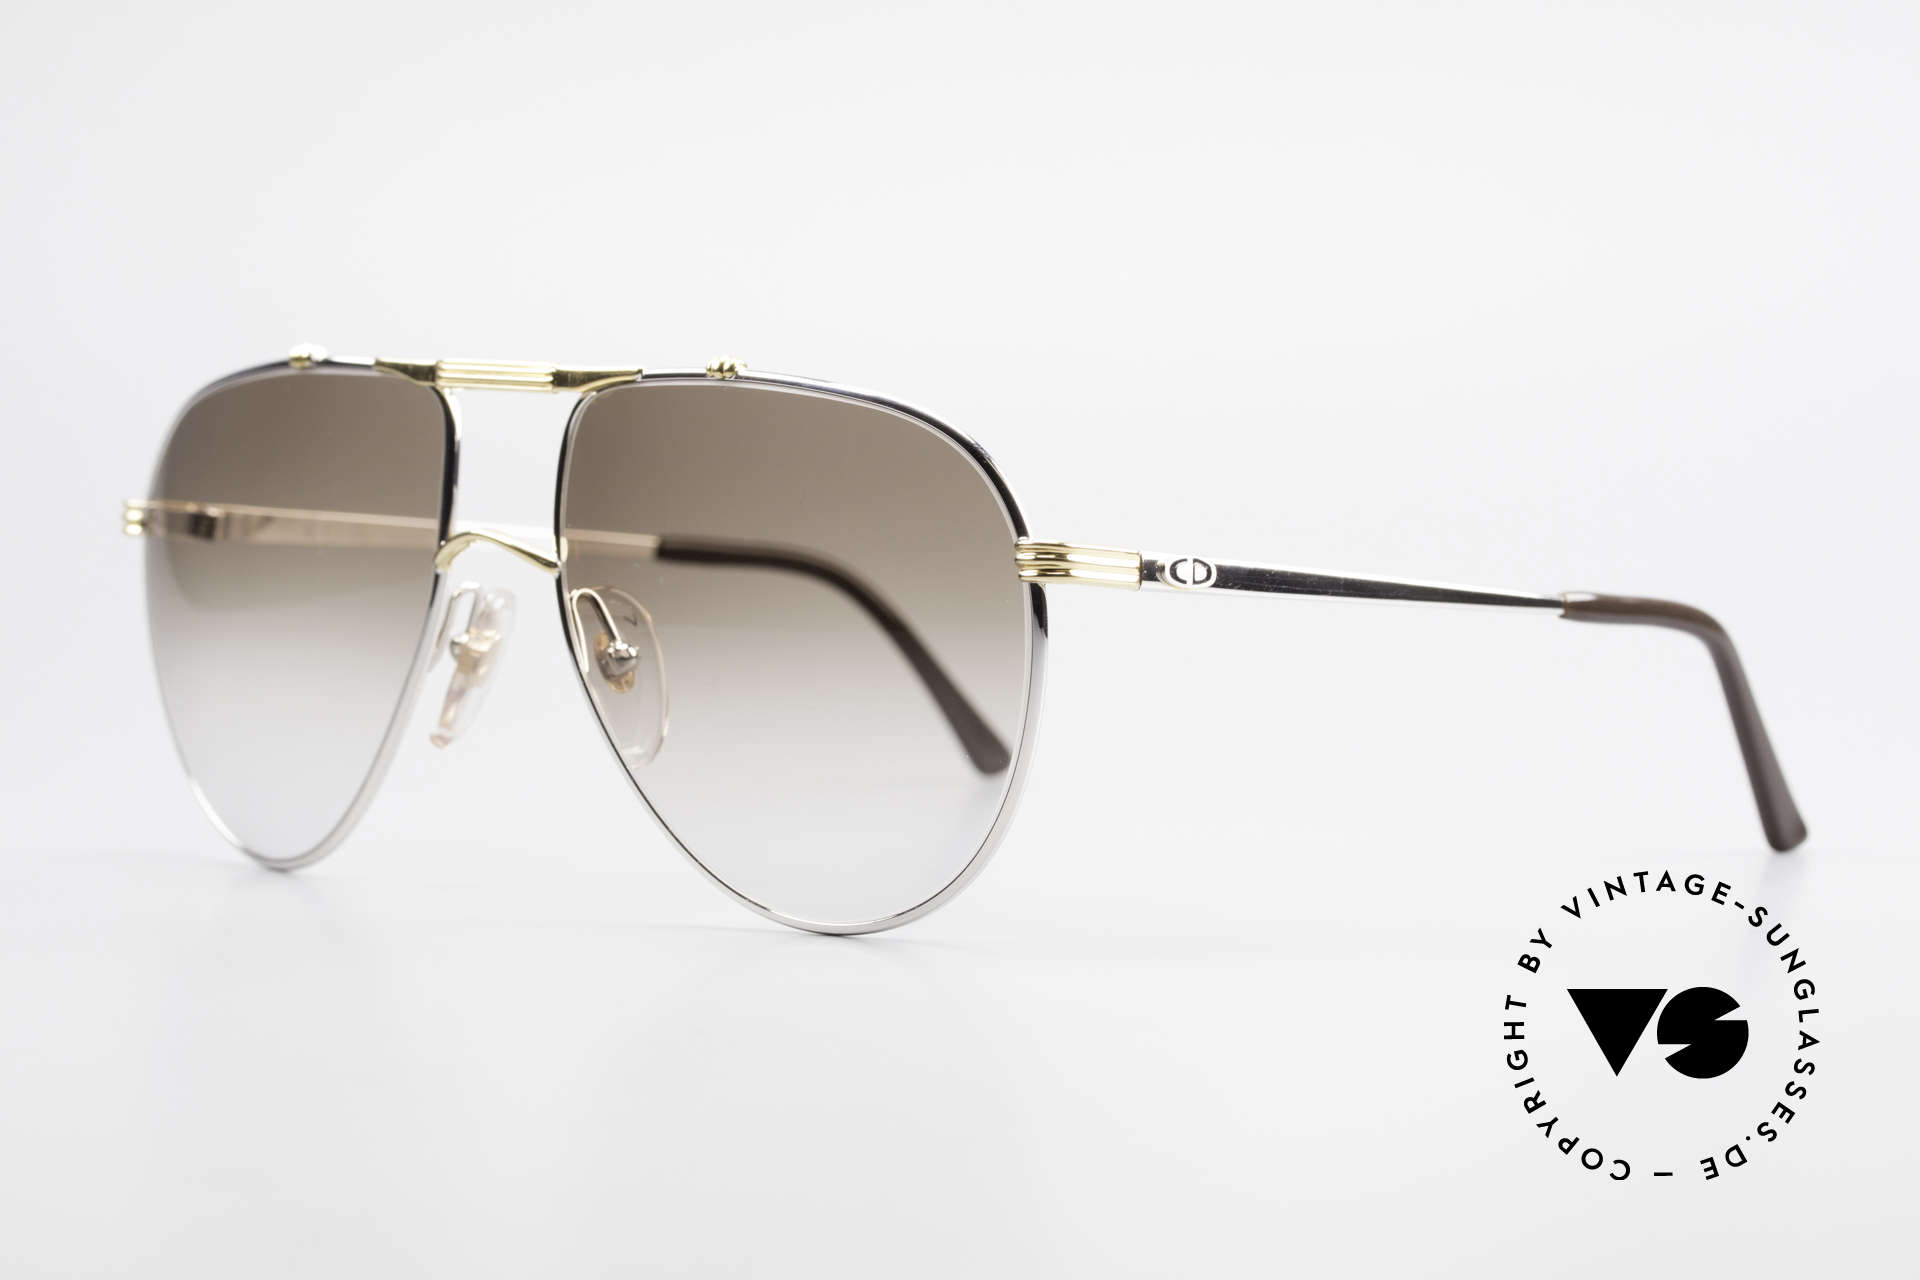 Christian Dior 2248 Large 80's Aviator Sunglasses, new old stock (like all our rare vintage C. Dior eyewear), Made for Men